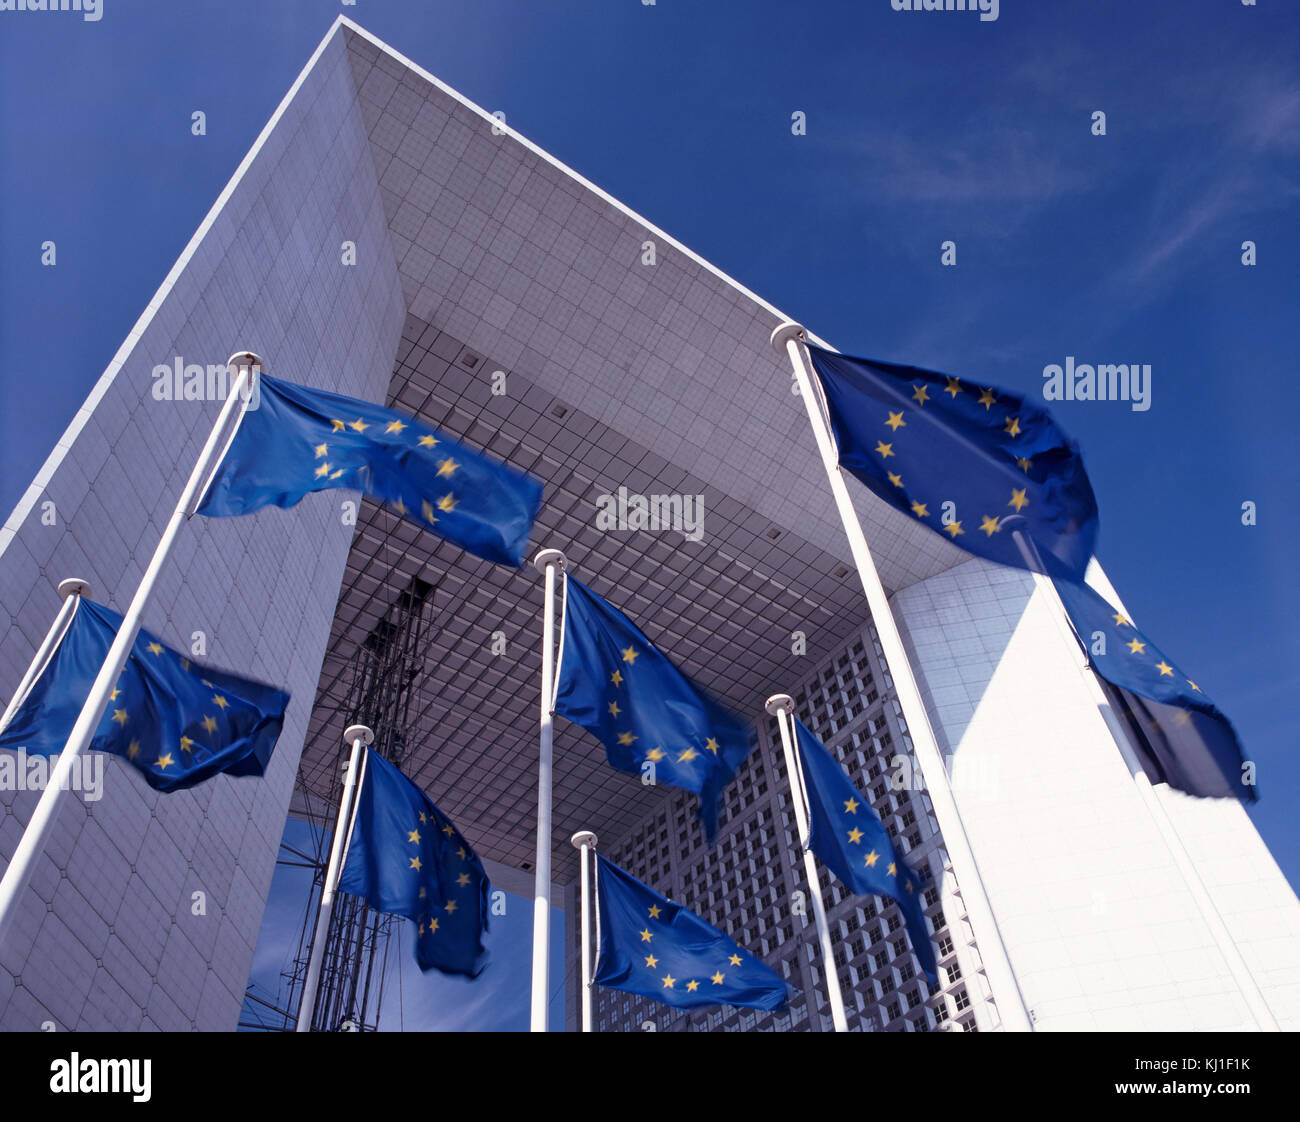 European Union Flags in front of the Grand Arch at La Defense, Paris, France Stock Photo